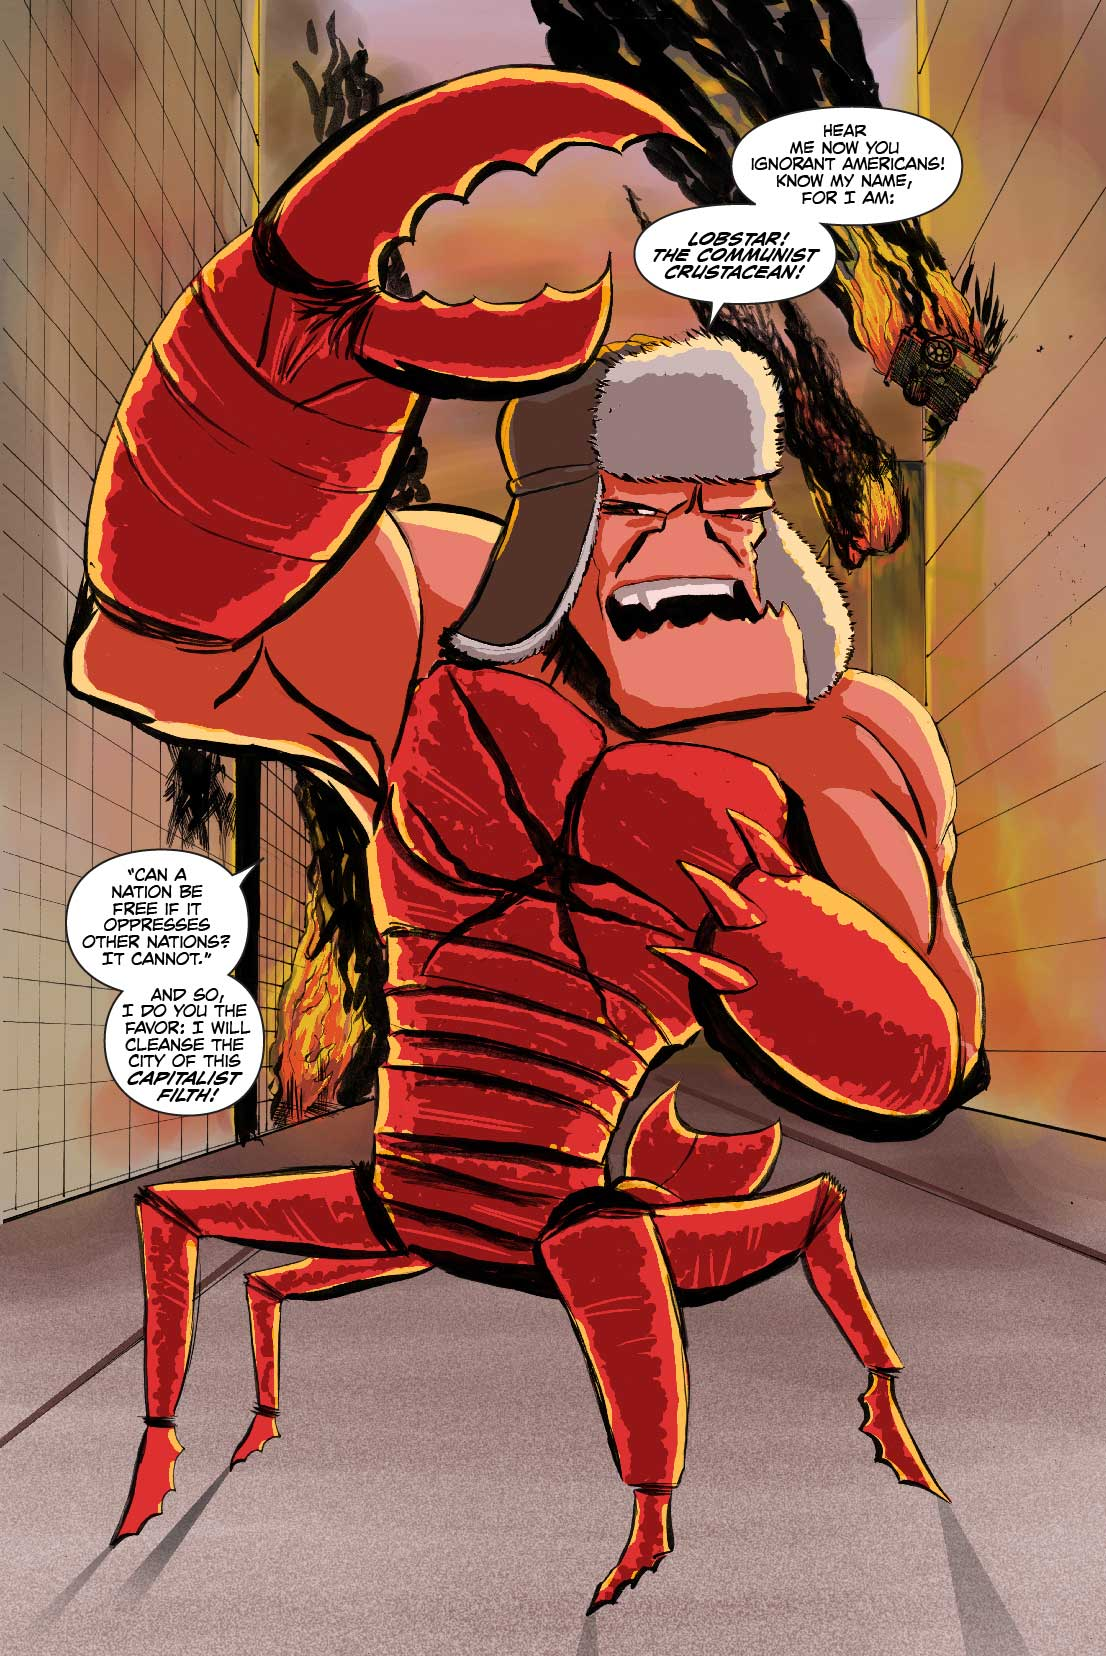 PAGE 45 Panel 1. We see LobStar raging in the middle of the street. LOBSTAR: I will crush the Americans! I am LobStar! I will cleanses the city of this capitalist filth!